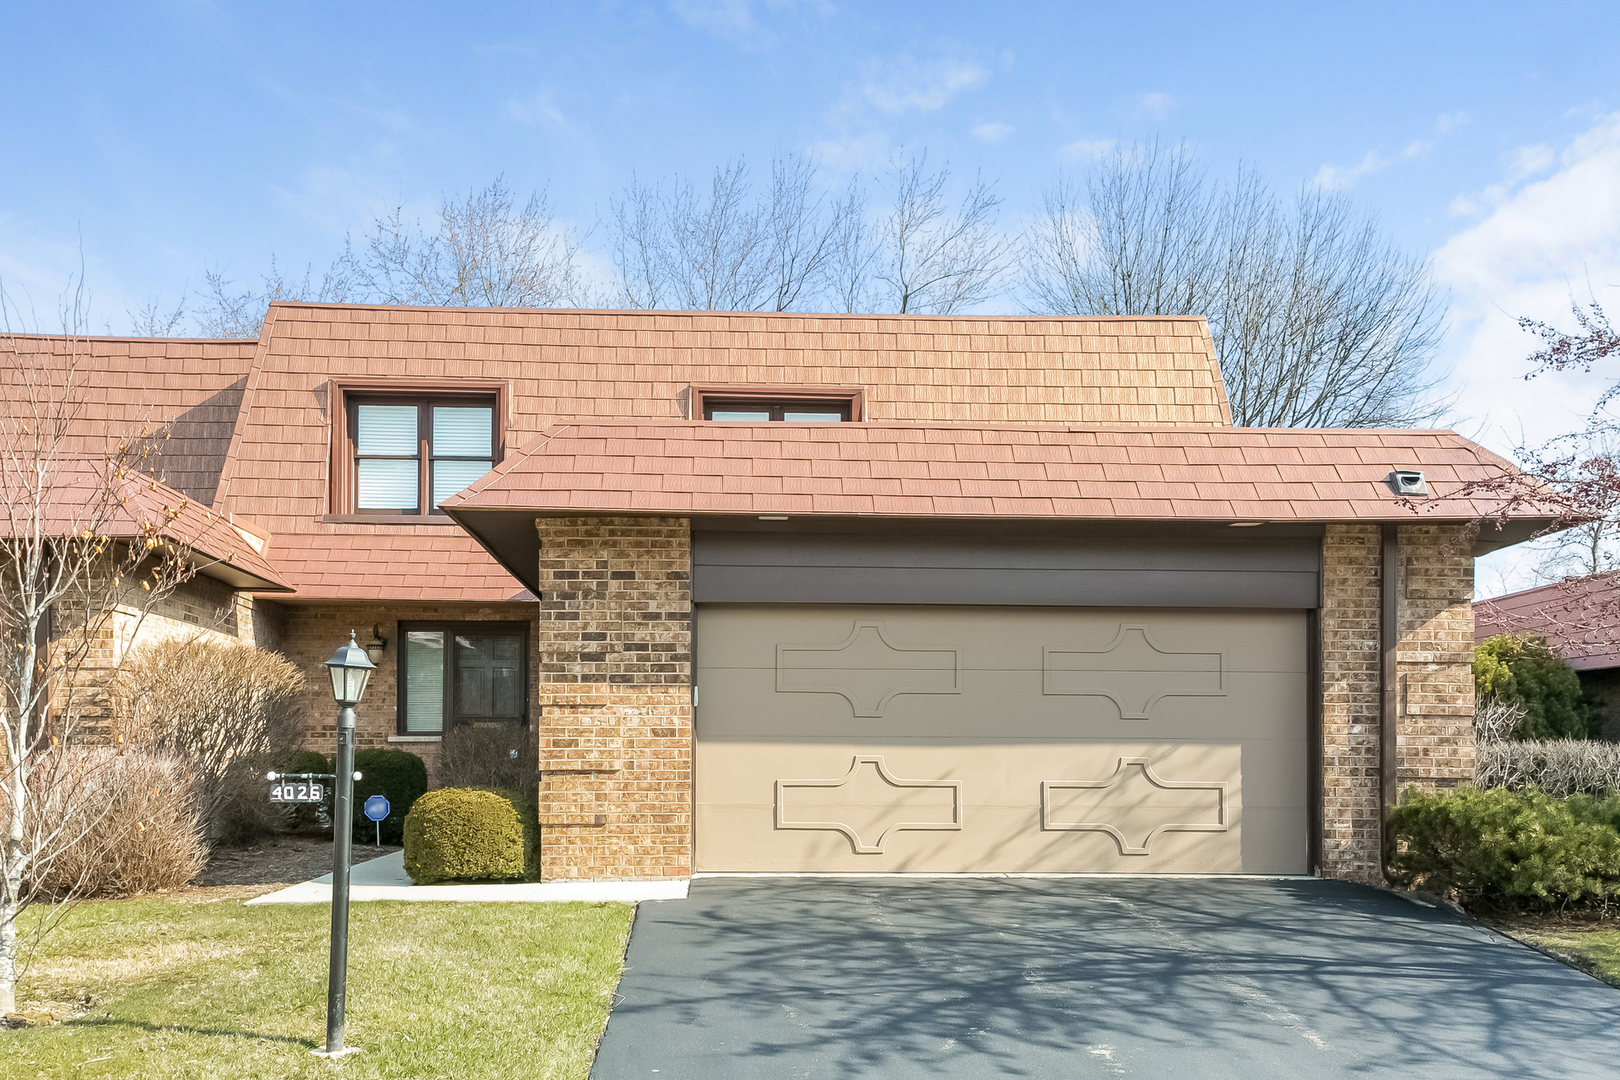 4026 Dundee Road, Northbrook in Cook County, IL 60062 Home for Sale